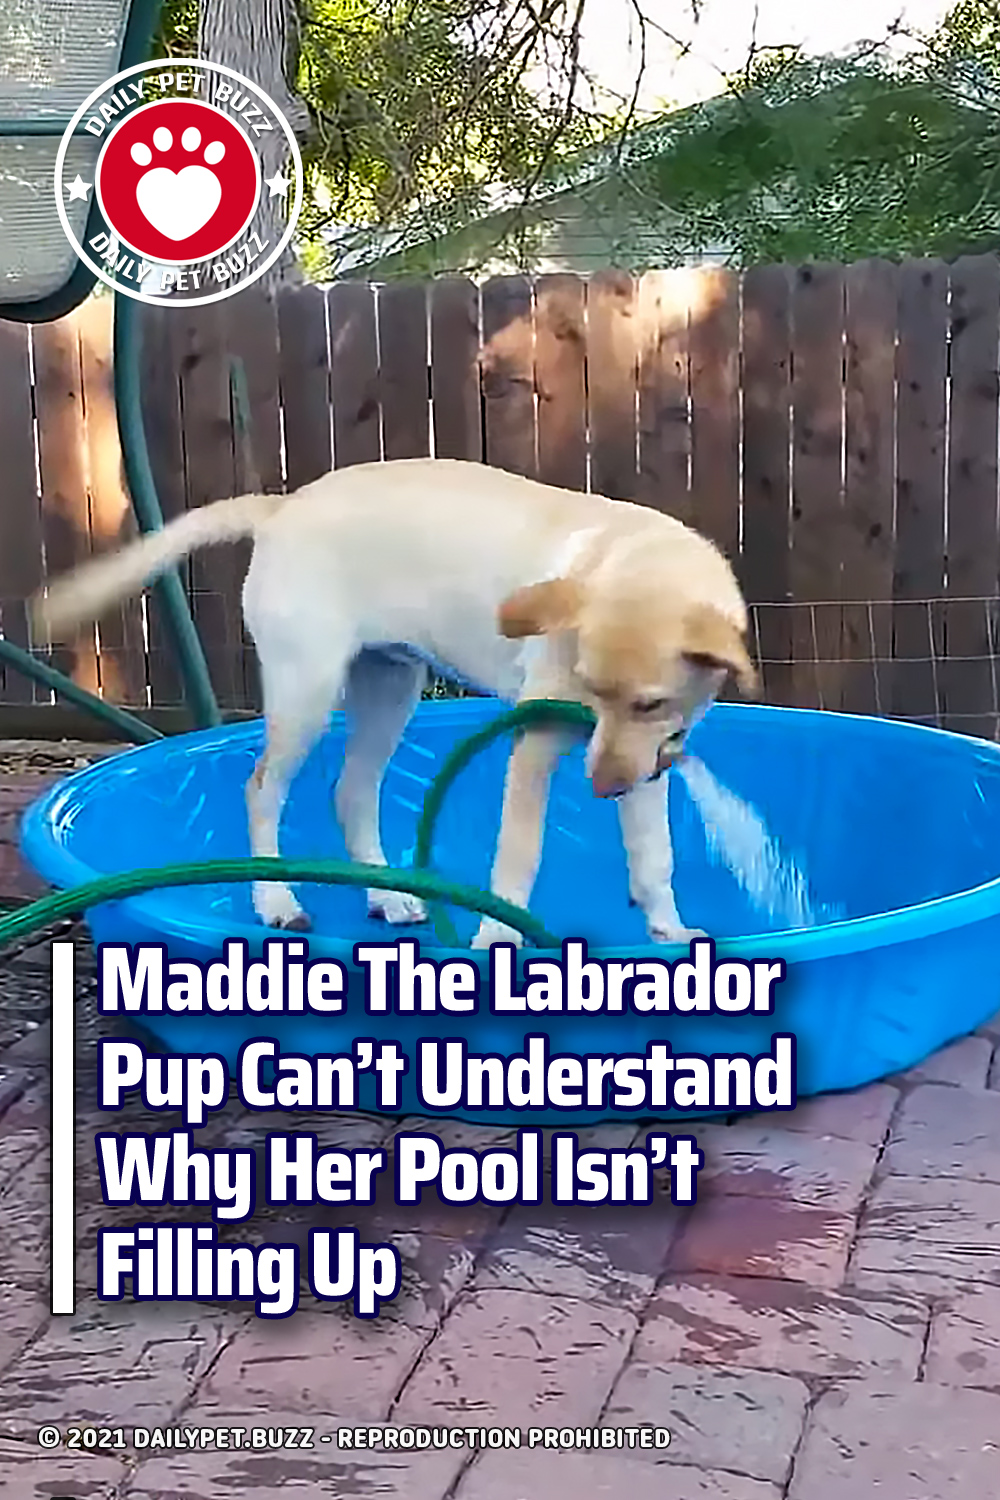 Maddie The Labrador Pup Can\'t Understand Why Her Pool Isn\'t Filling Up